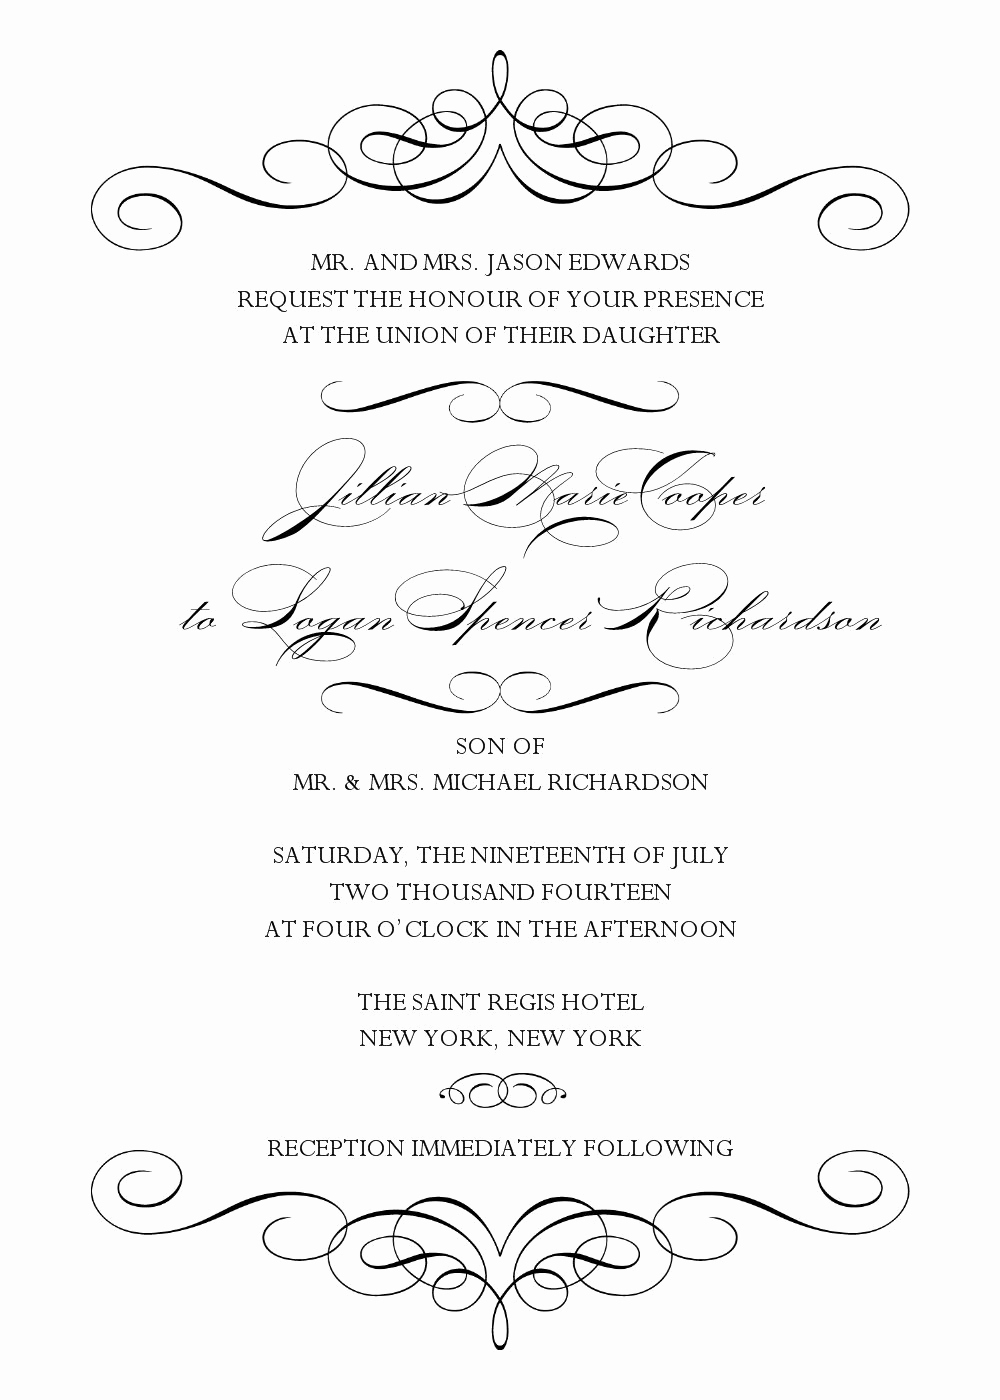 Wedding Invitation Templates Word Unique Wedding Invitation Wedding Invitation Templates Word